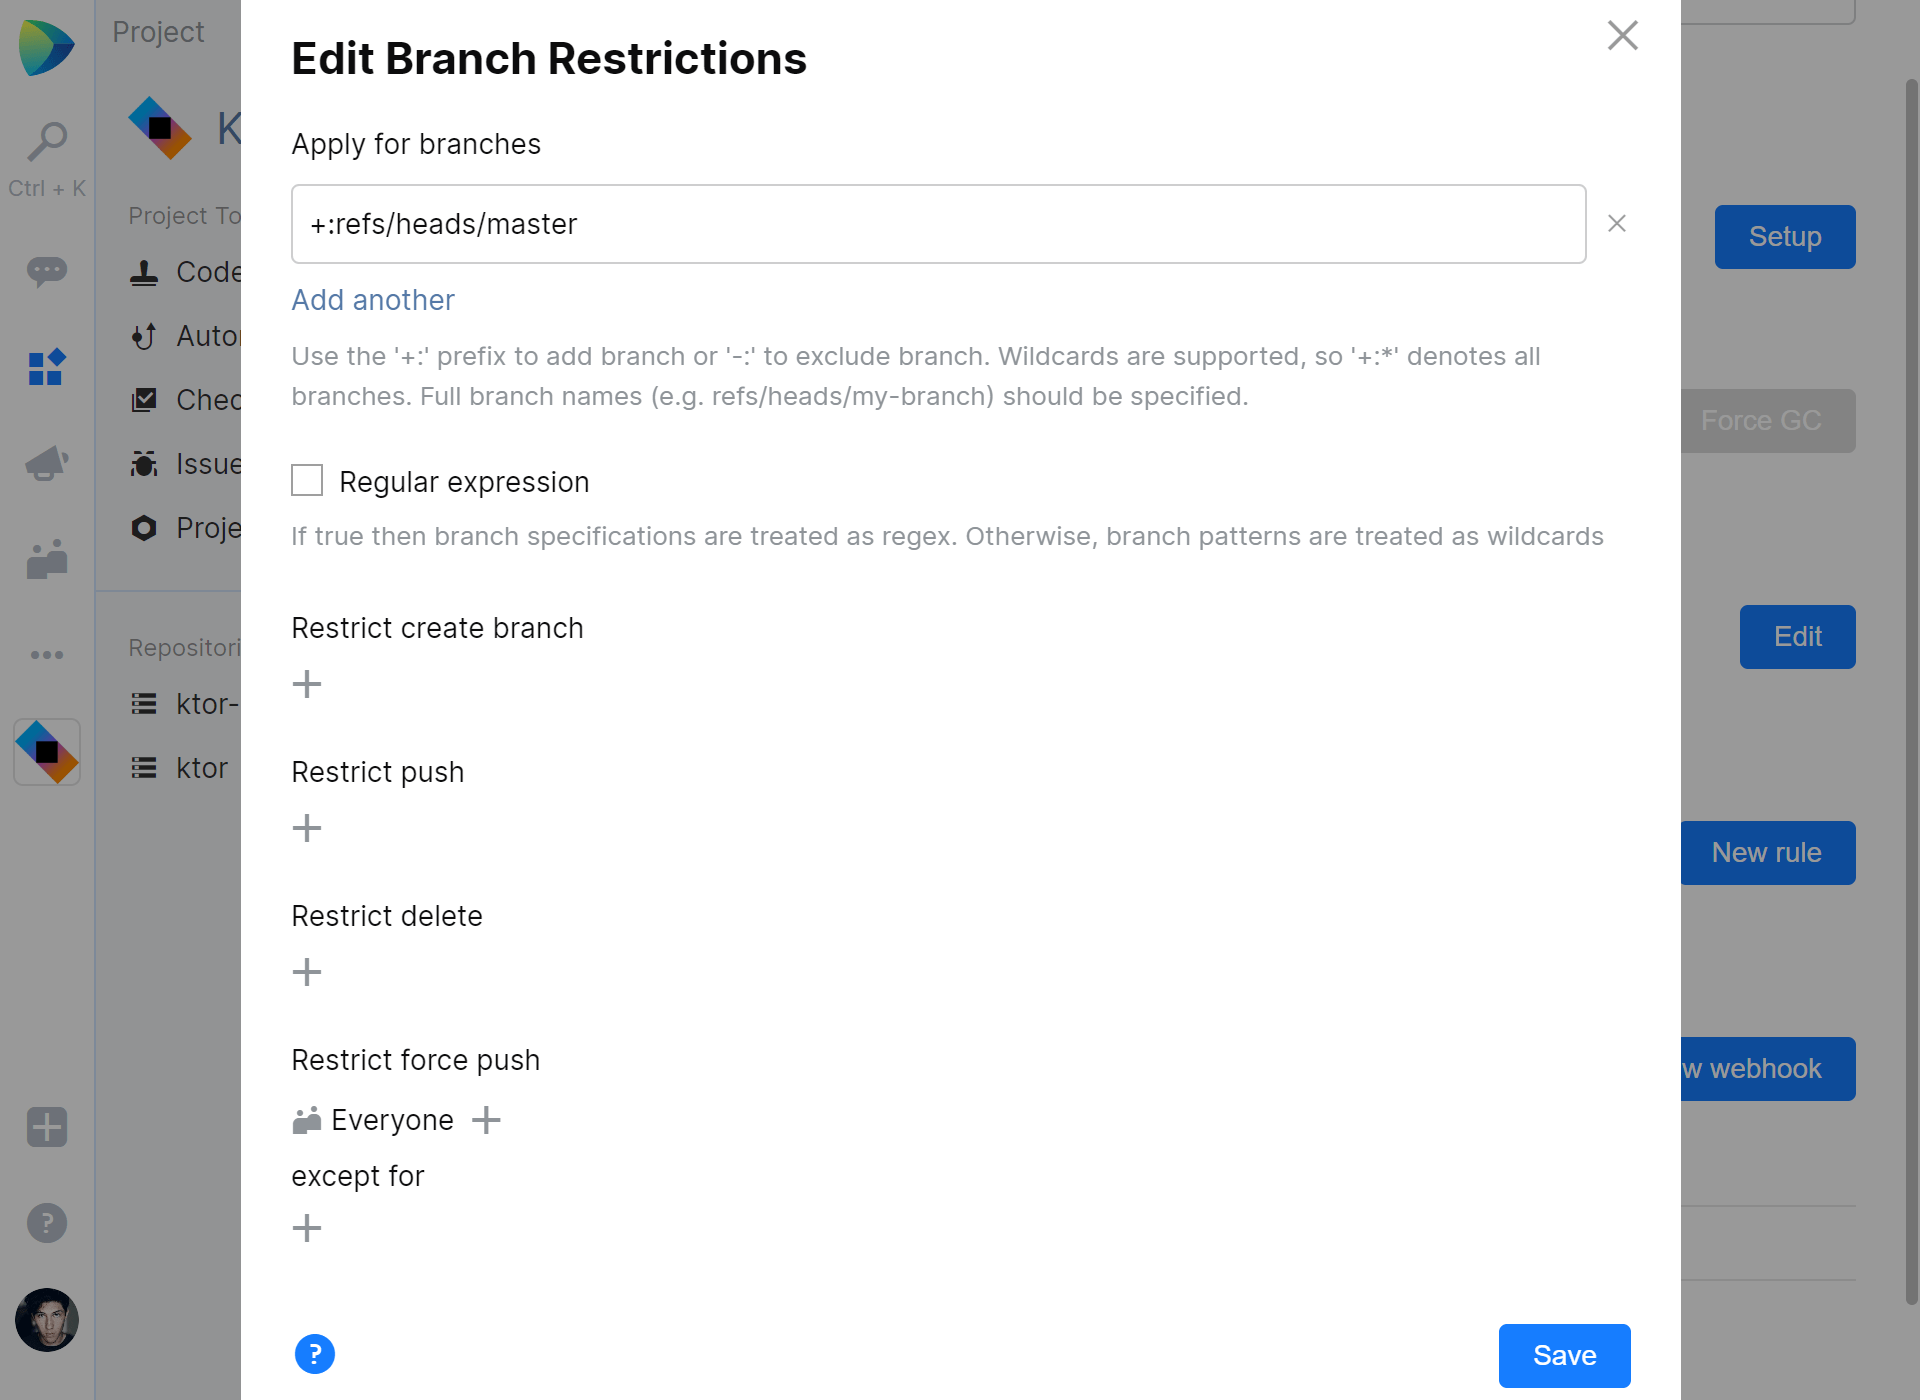 Restrict force push to Git repository in JetBrains Space